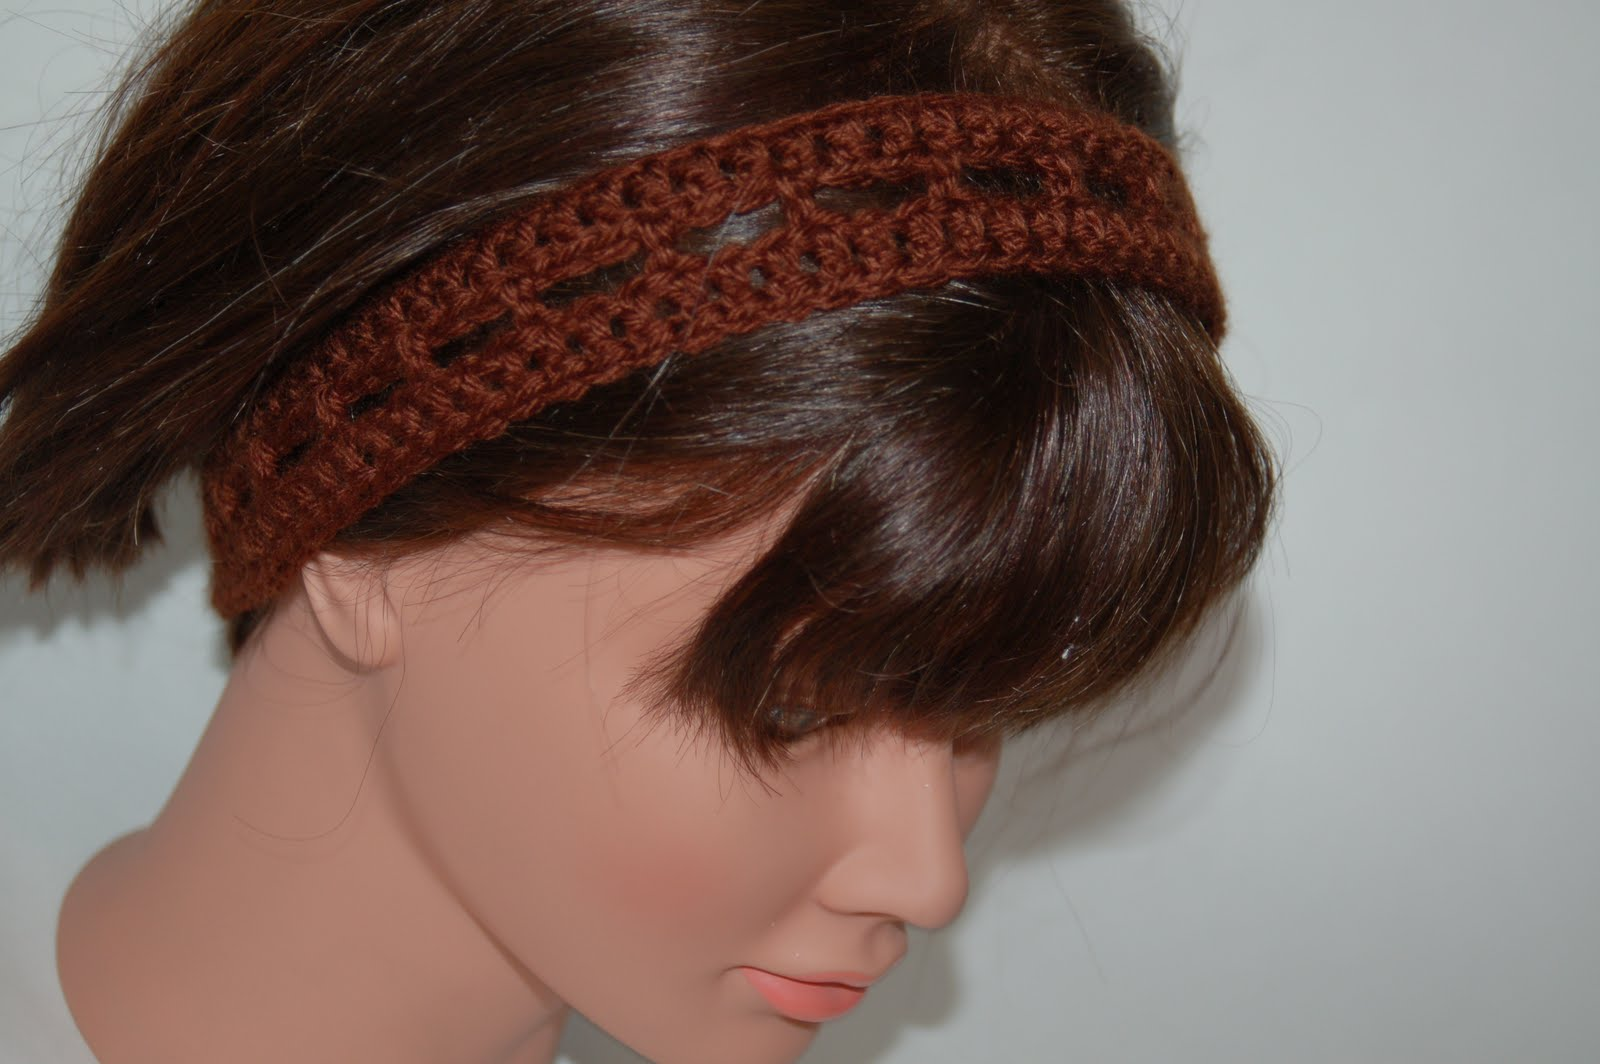 Living the Craft Life: New Crochet Headband Designs